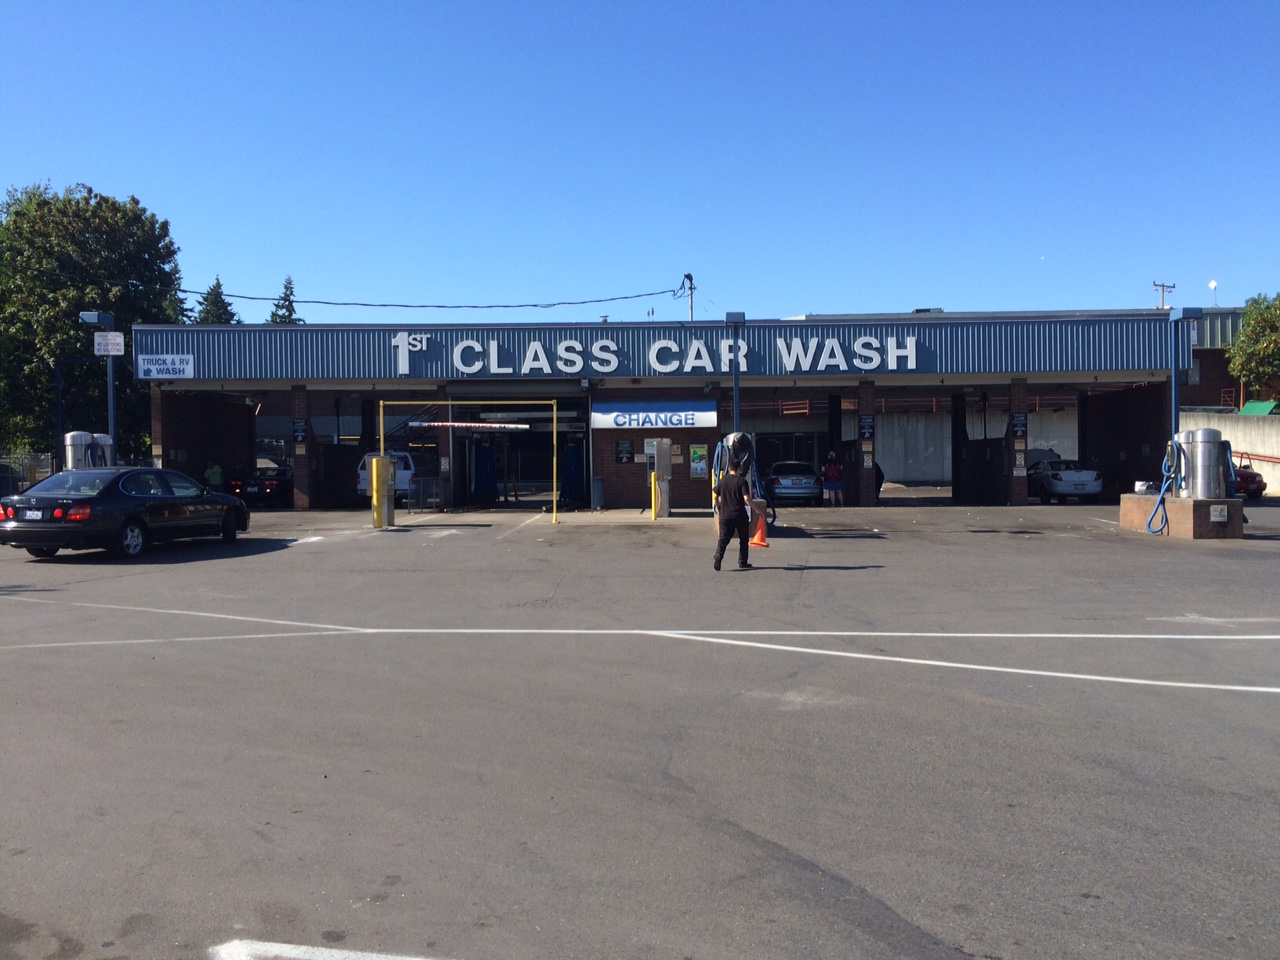 Car wash andys handy mart 6 self service bays cashcredit and a rollover automatic we have 7 coin operated vacuums along with a carpet shampooer and assorted car care vending solutioingenieria Images